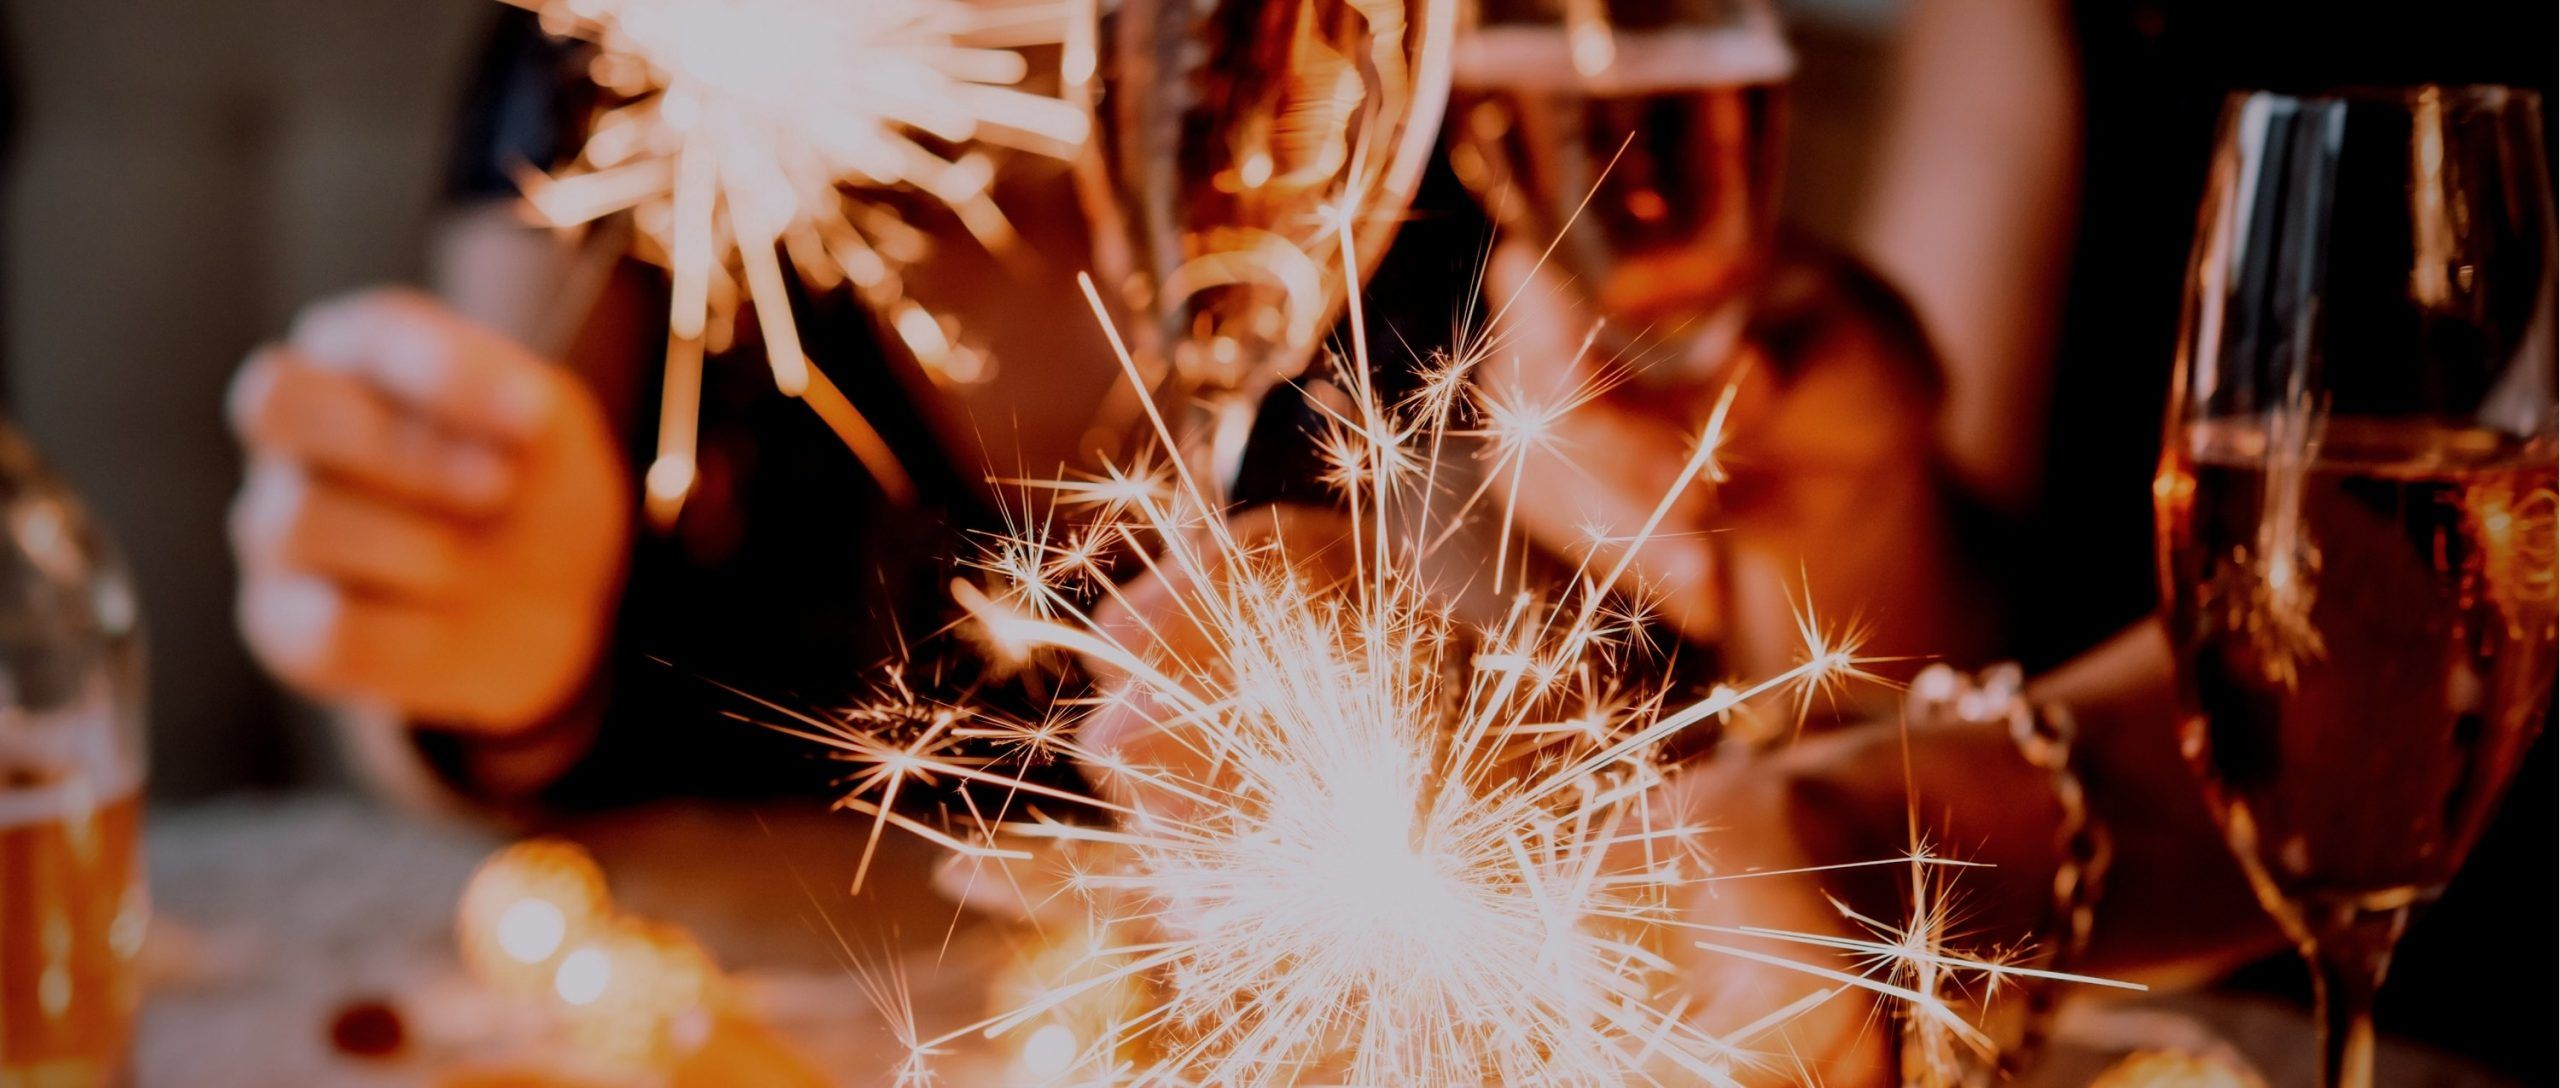 30 Best Virtual Holiday Party Ideas For 2020 San Francisco Virtual Holiday Party Virtual Holiday Party Ideas Virtual Party Ideas